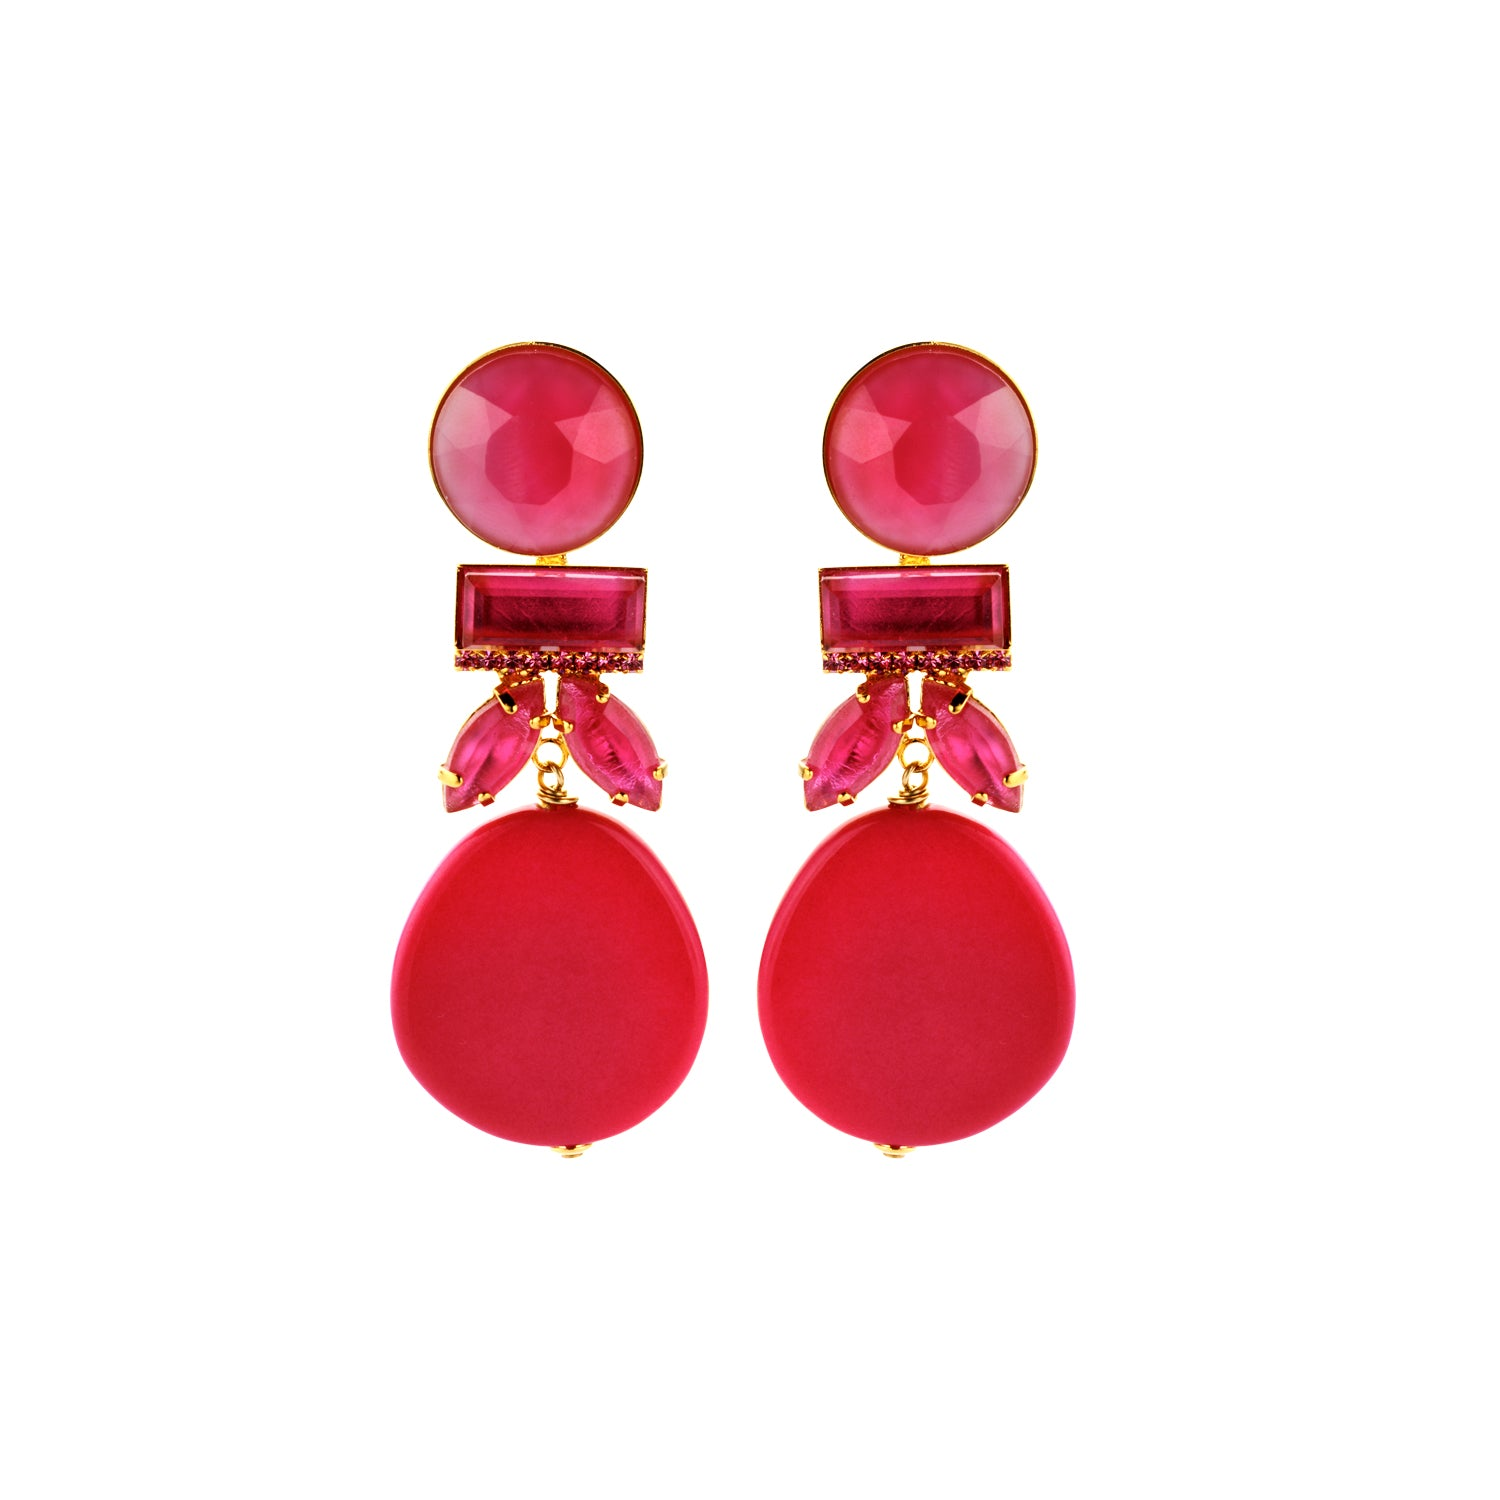 Grace fuchsia earrings - Souvenirs de Pomme